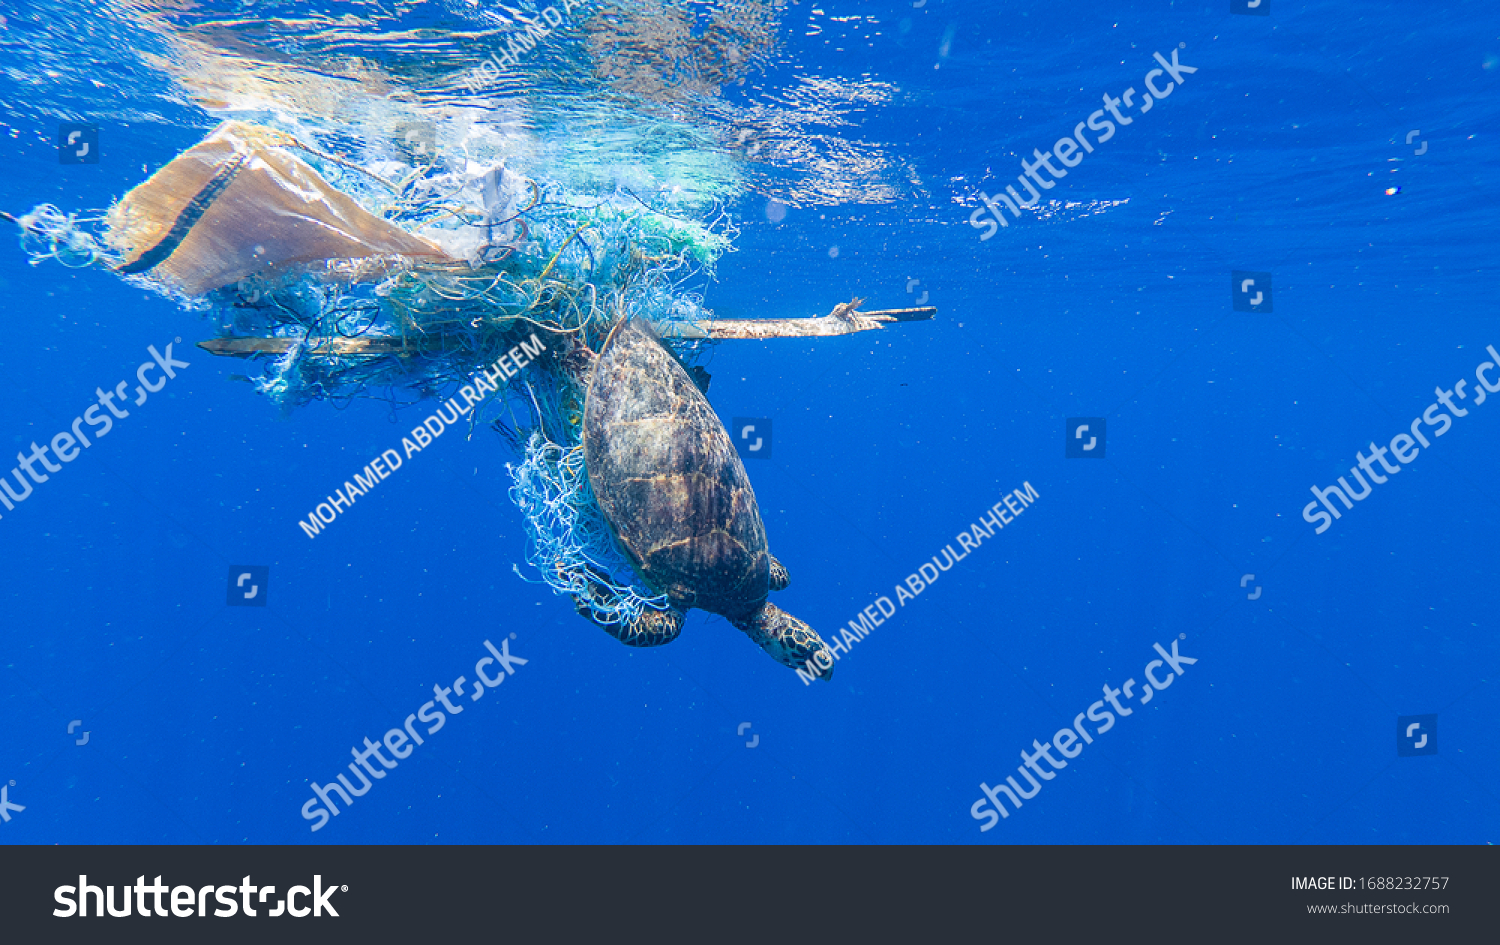 Green sea turtle entangled in a discarded fishing net #1688232757